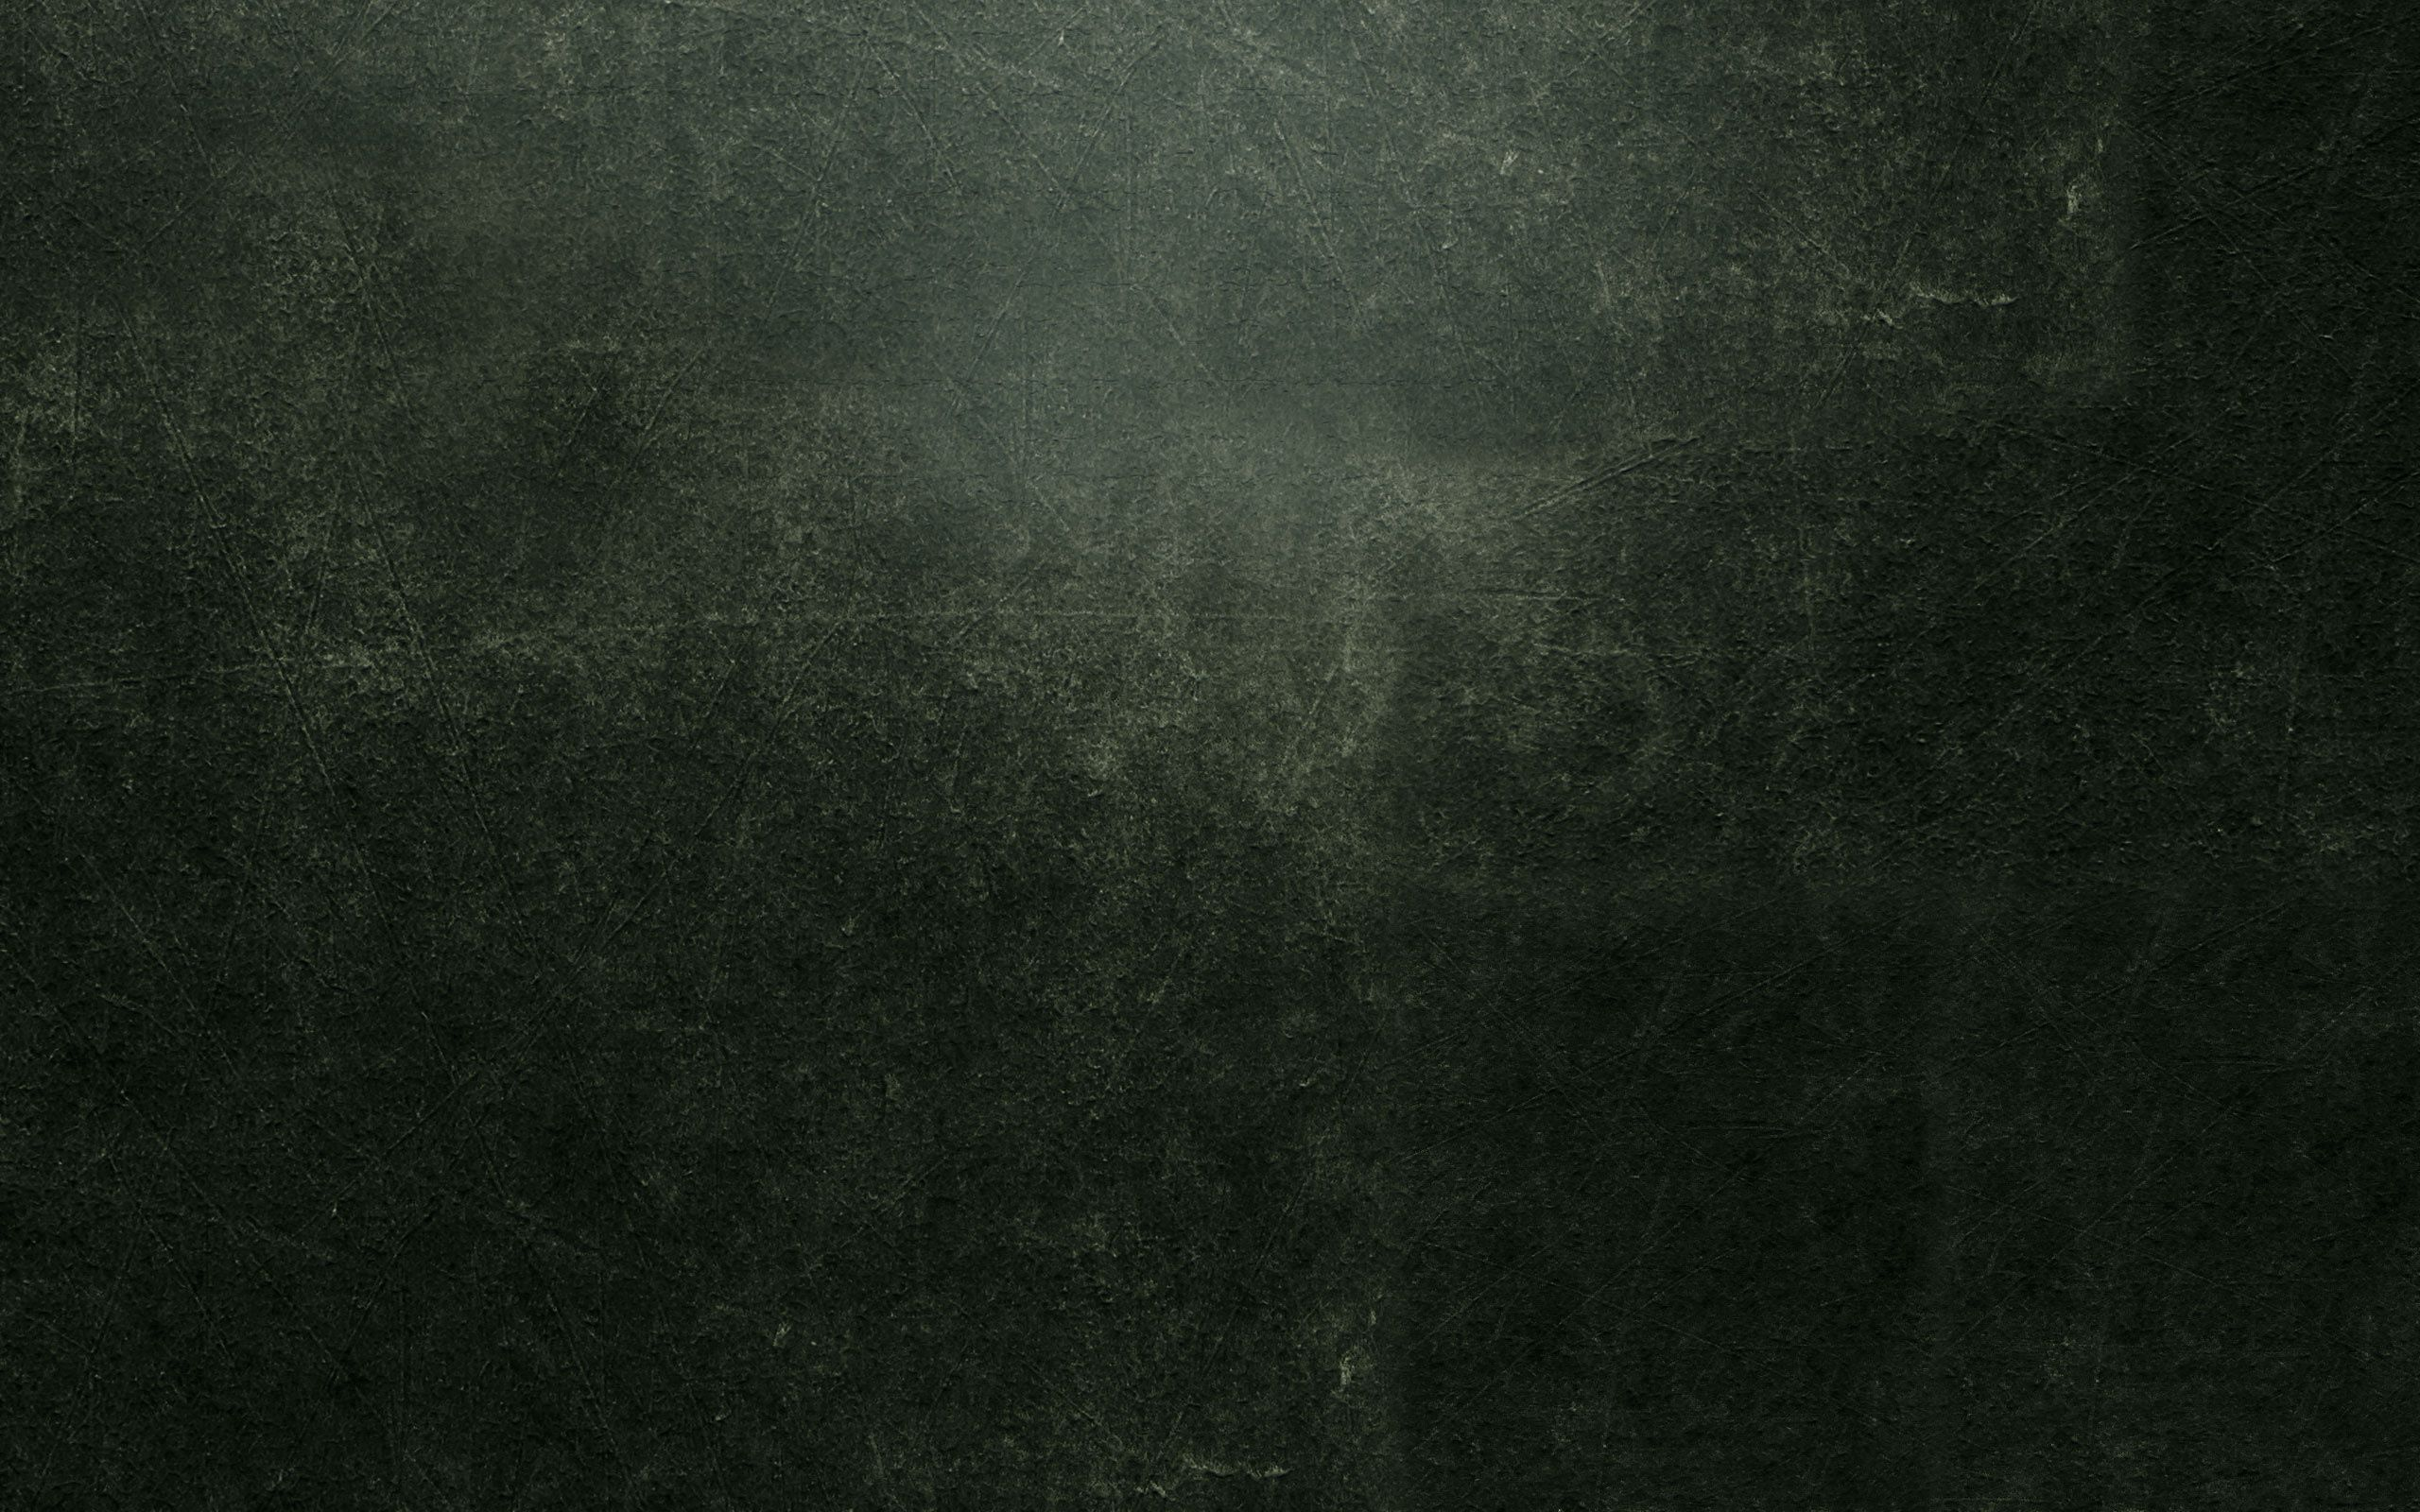 108067 download wallpaper Textures, Dark, Texture, Grey, Minimalistic screensavers and pictures for free